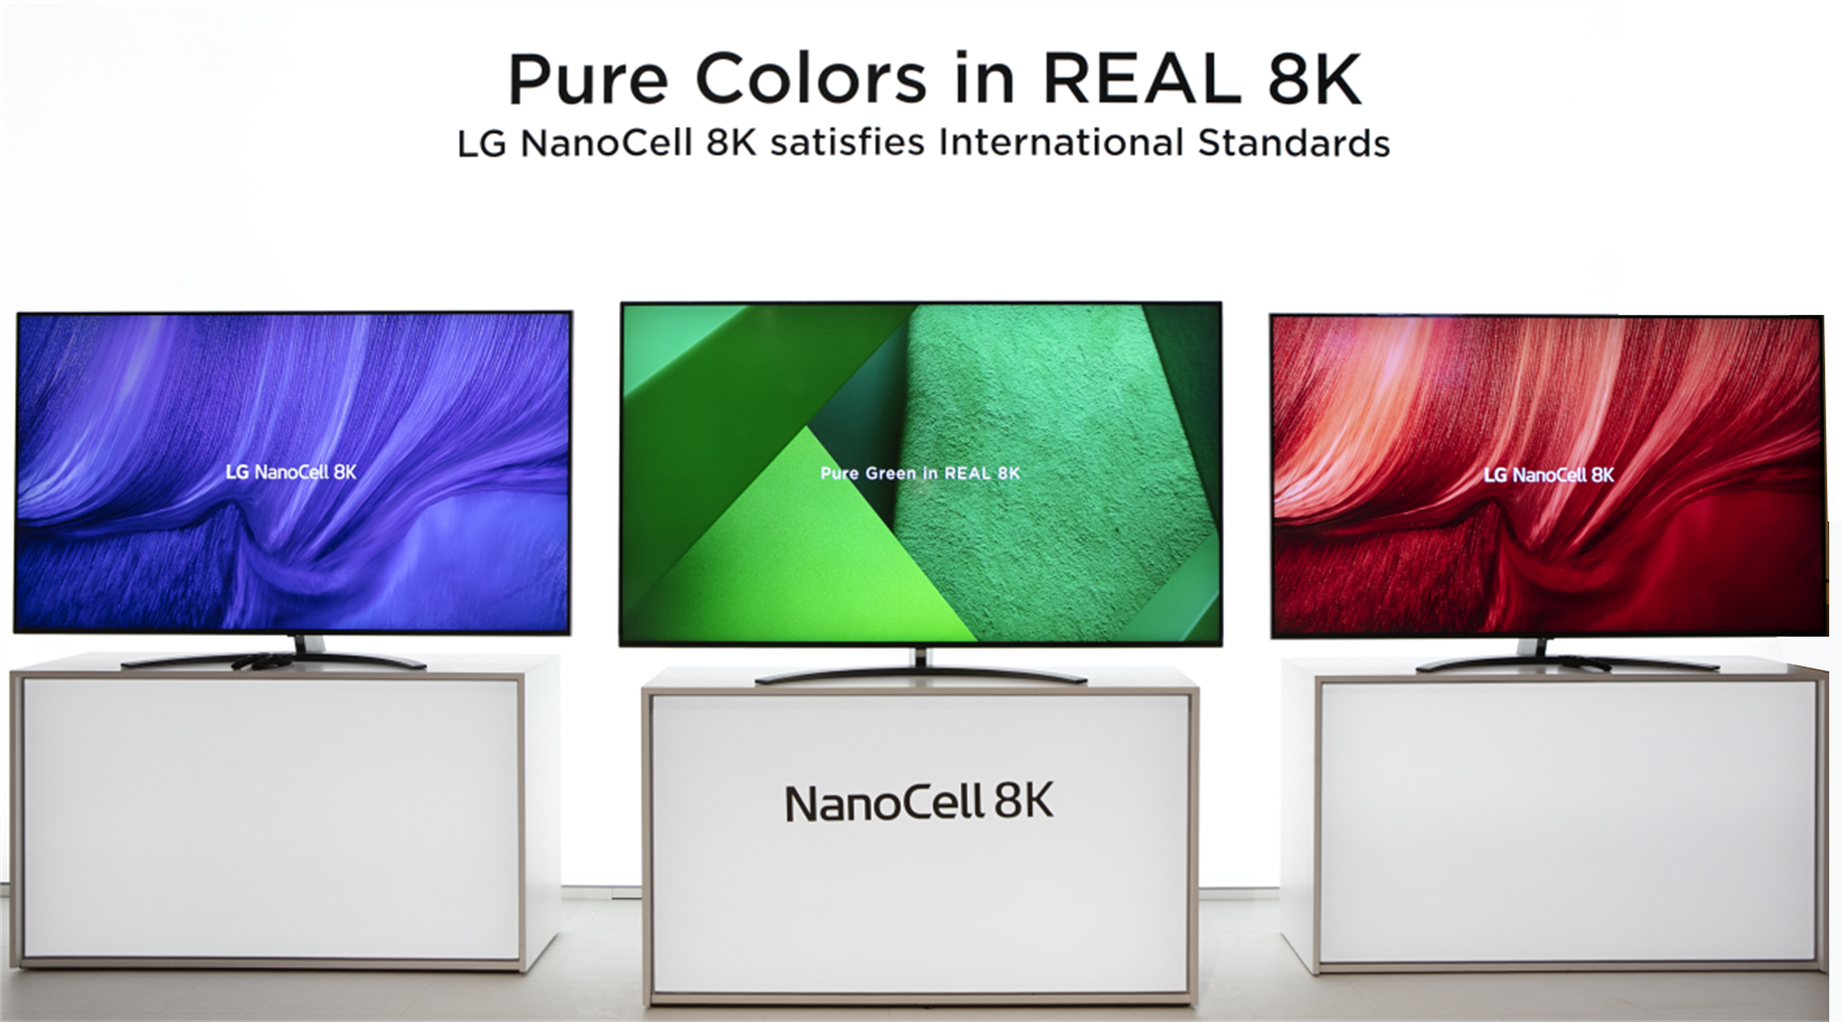 A concept image of the LG NanoCell 8K TVs that claims the TV satisfies international standards